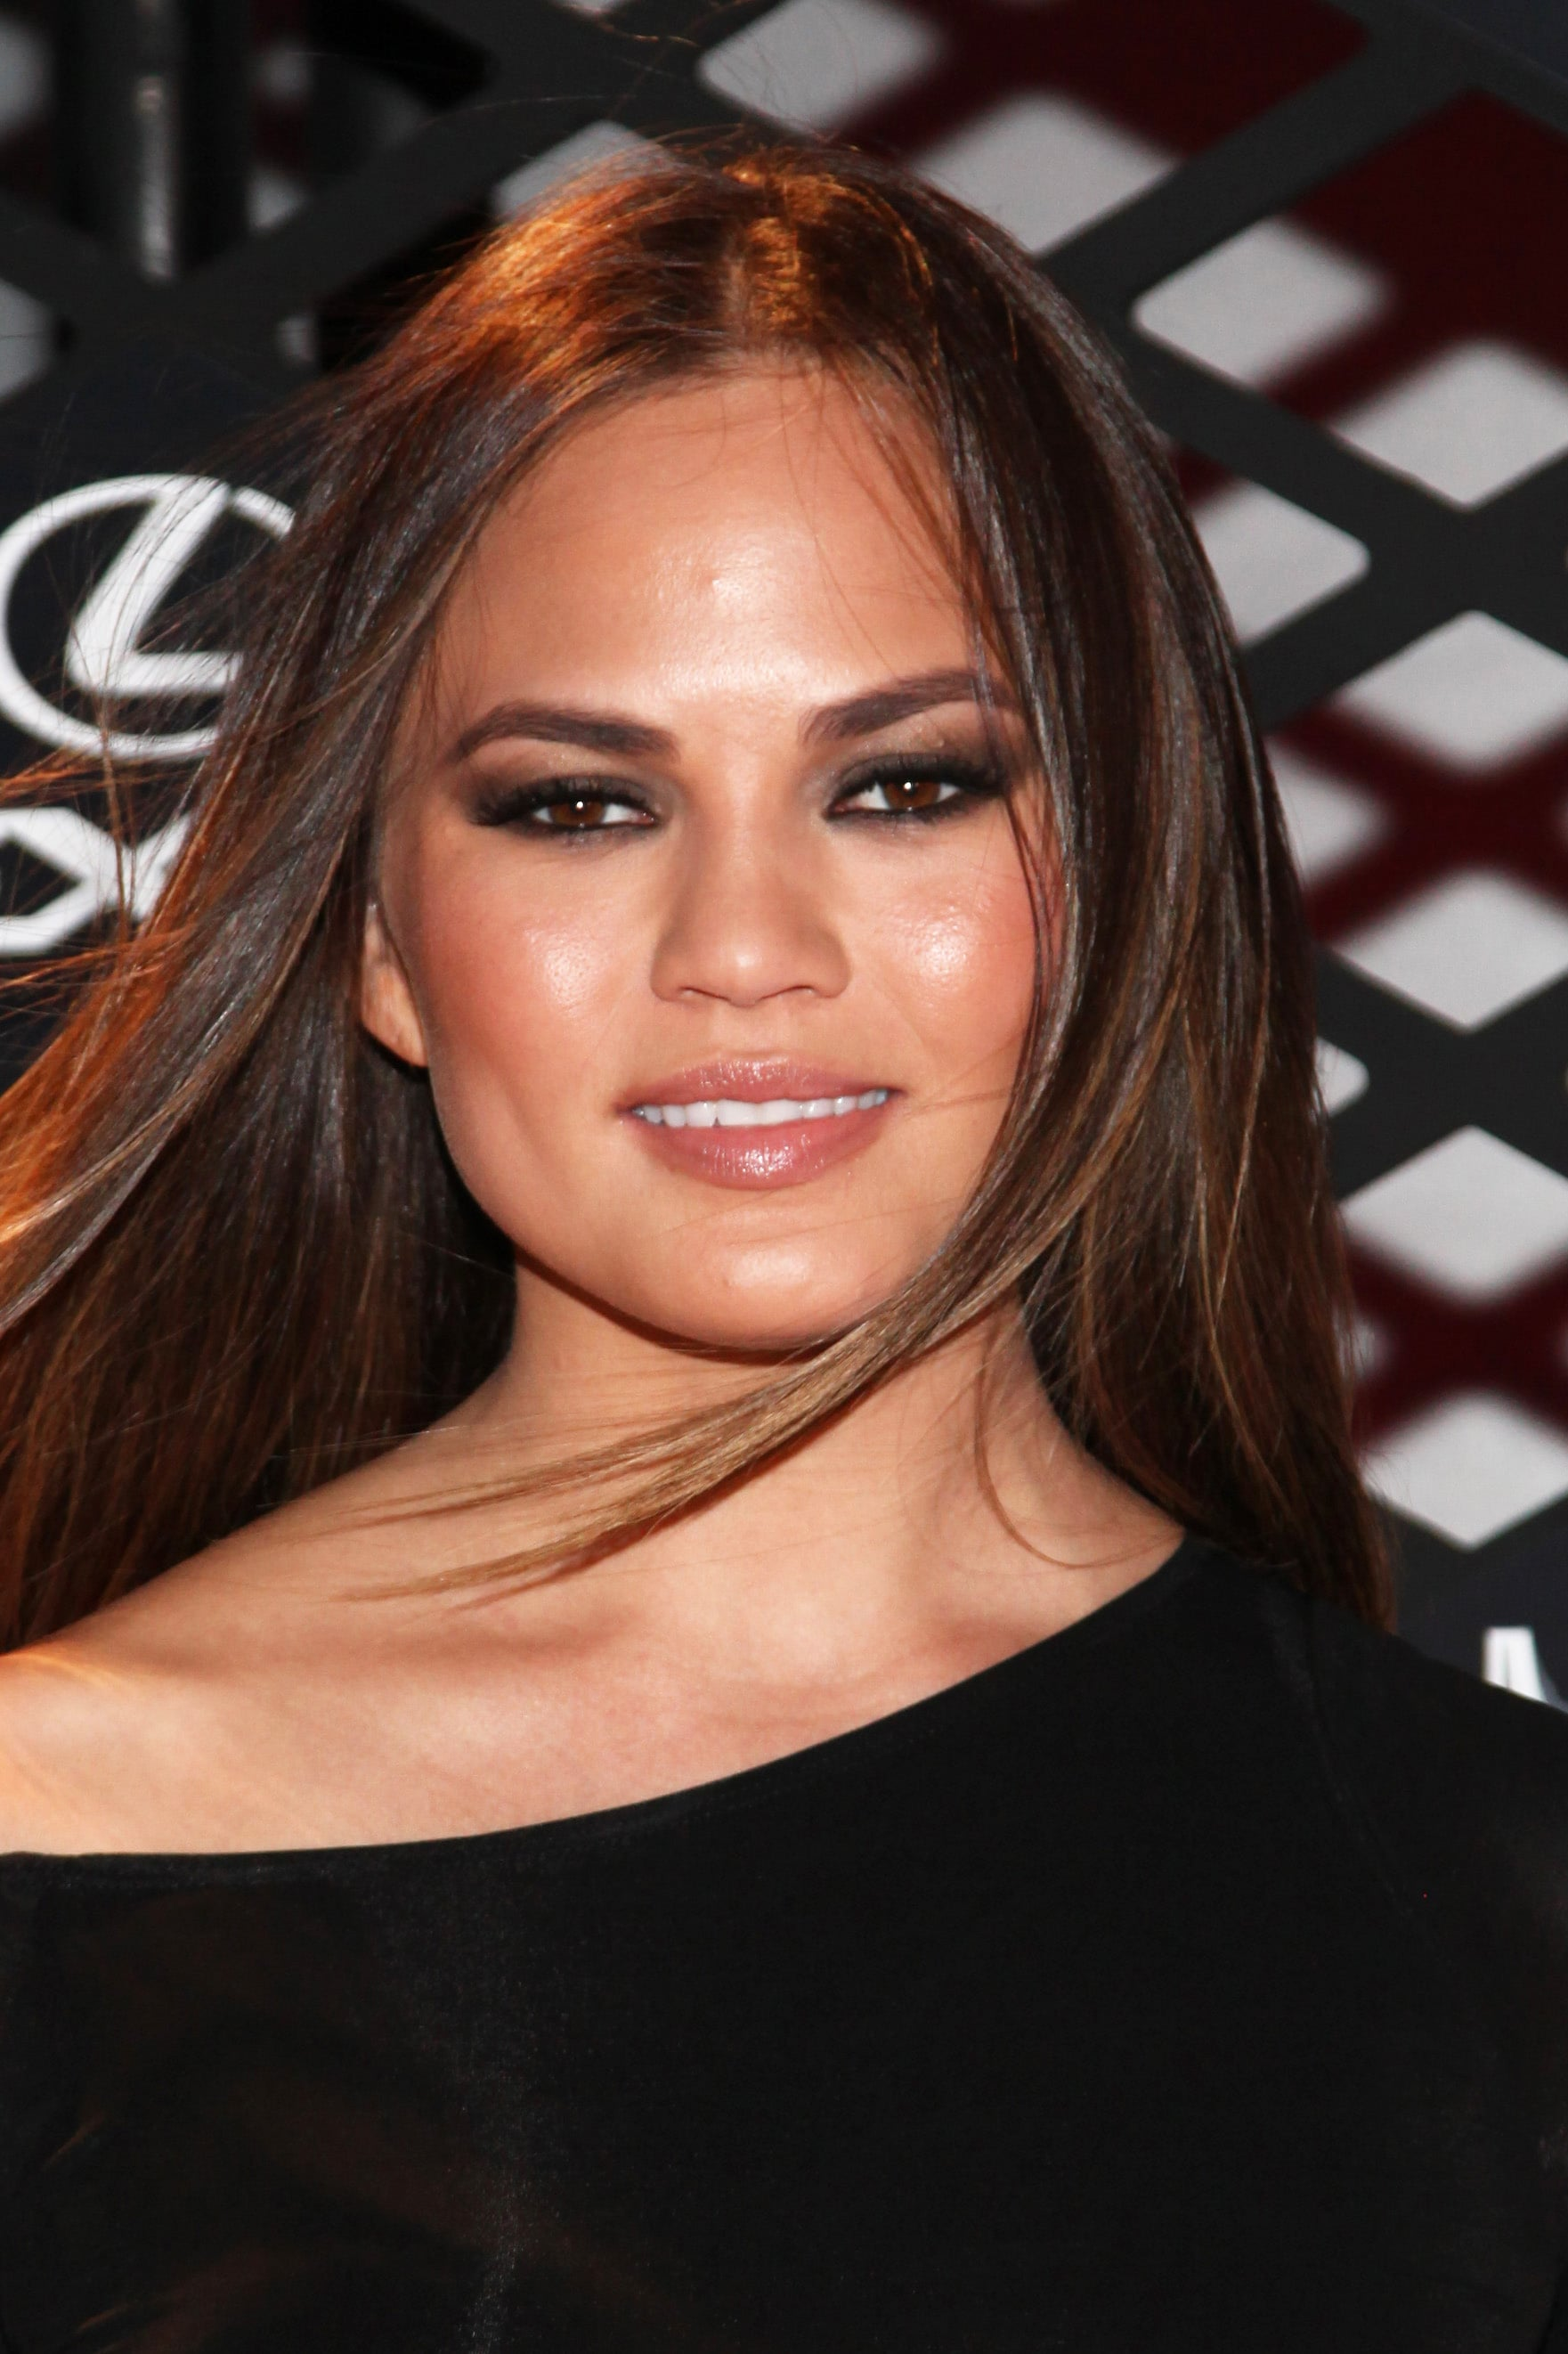 Chrissy Teigen at the Lexus Design Disrupted Fashion Experience.